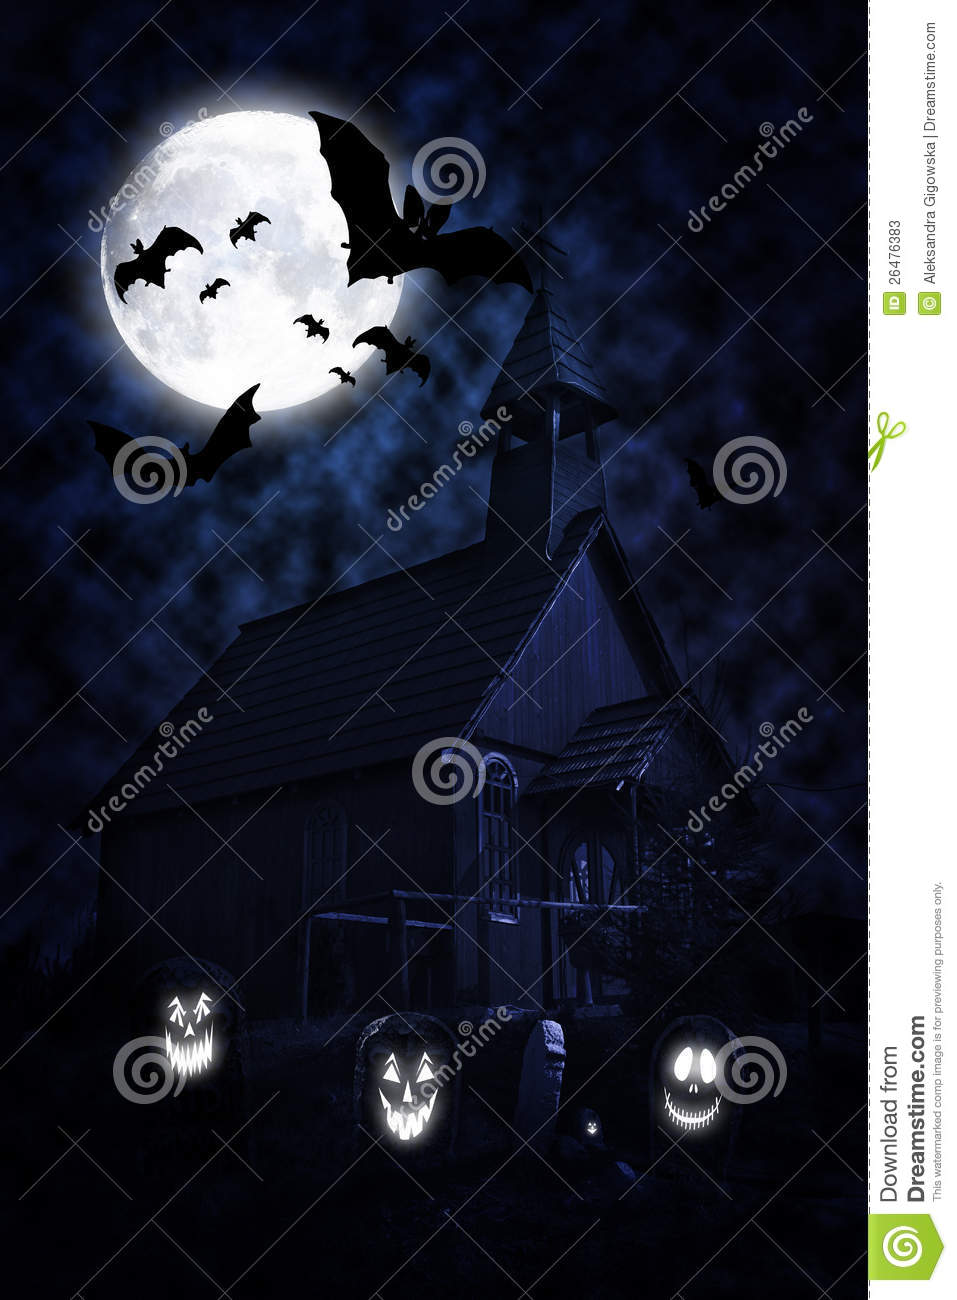 Halloween churchyard at night with scary ghosts